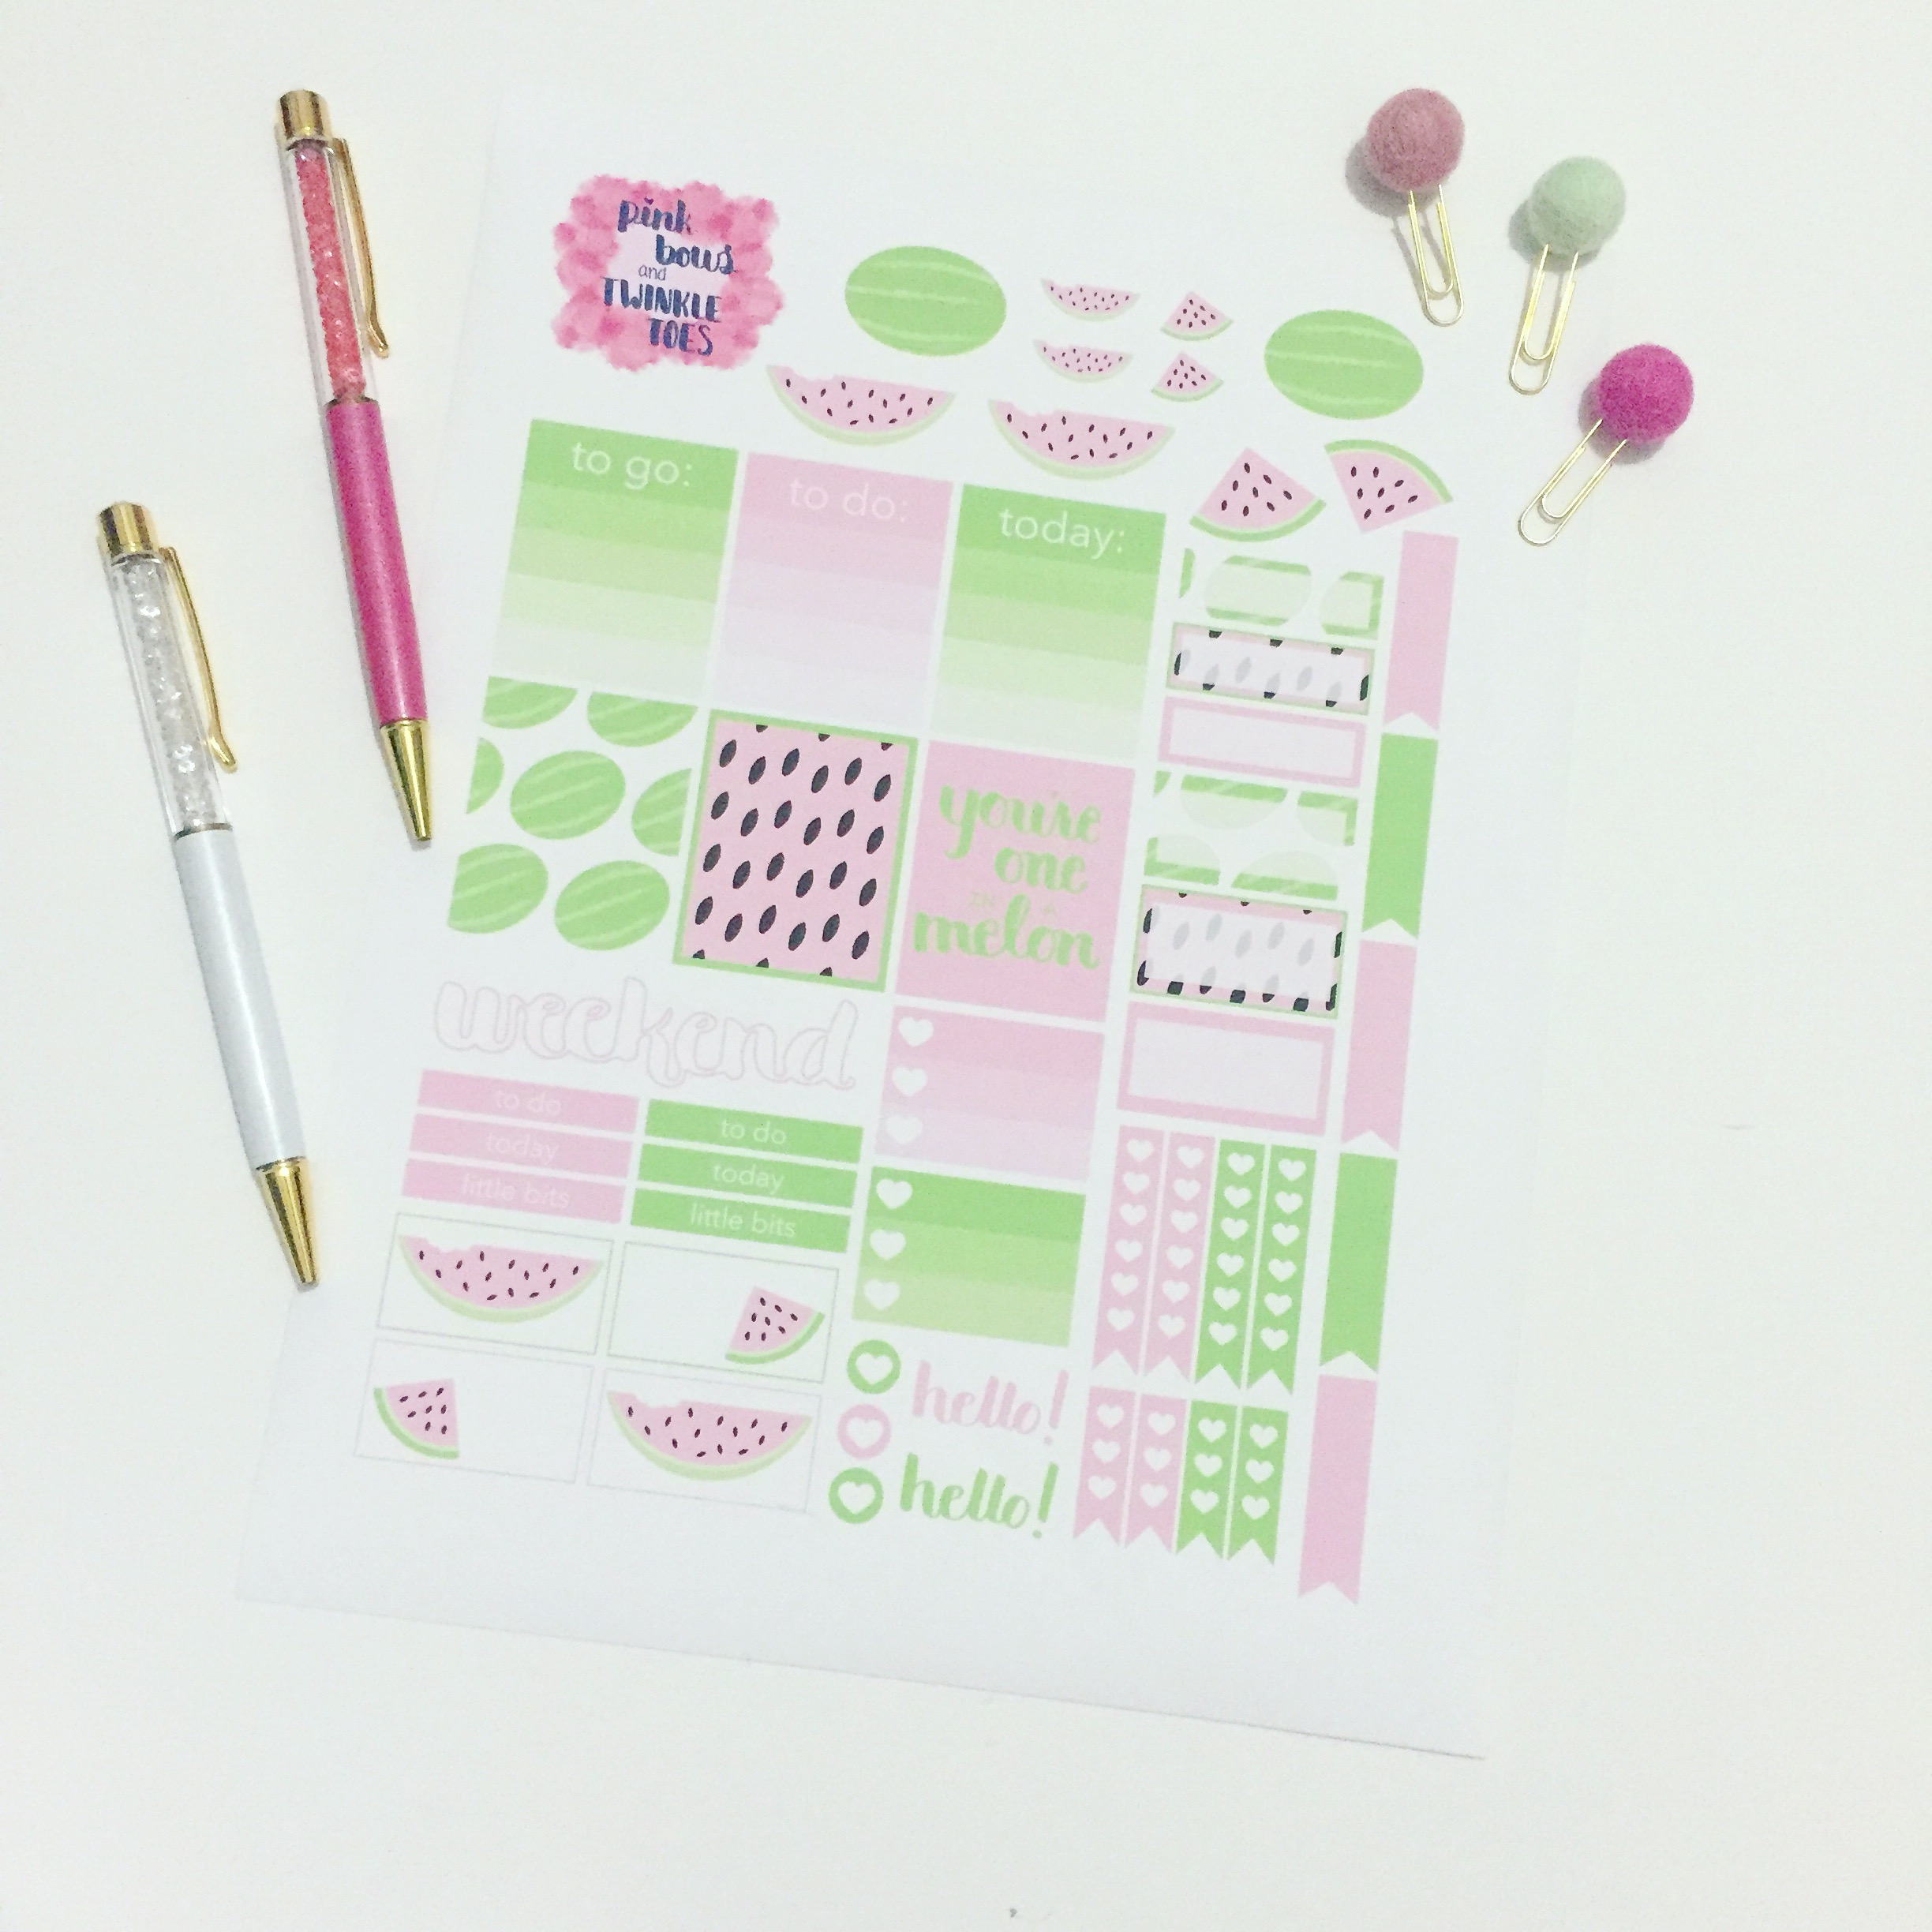 photo regarding Have a Ball This Summer Free Printable named Summer time Melons Planner Stickers: Cost-free Printable - Red Bows